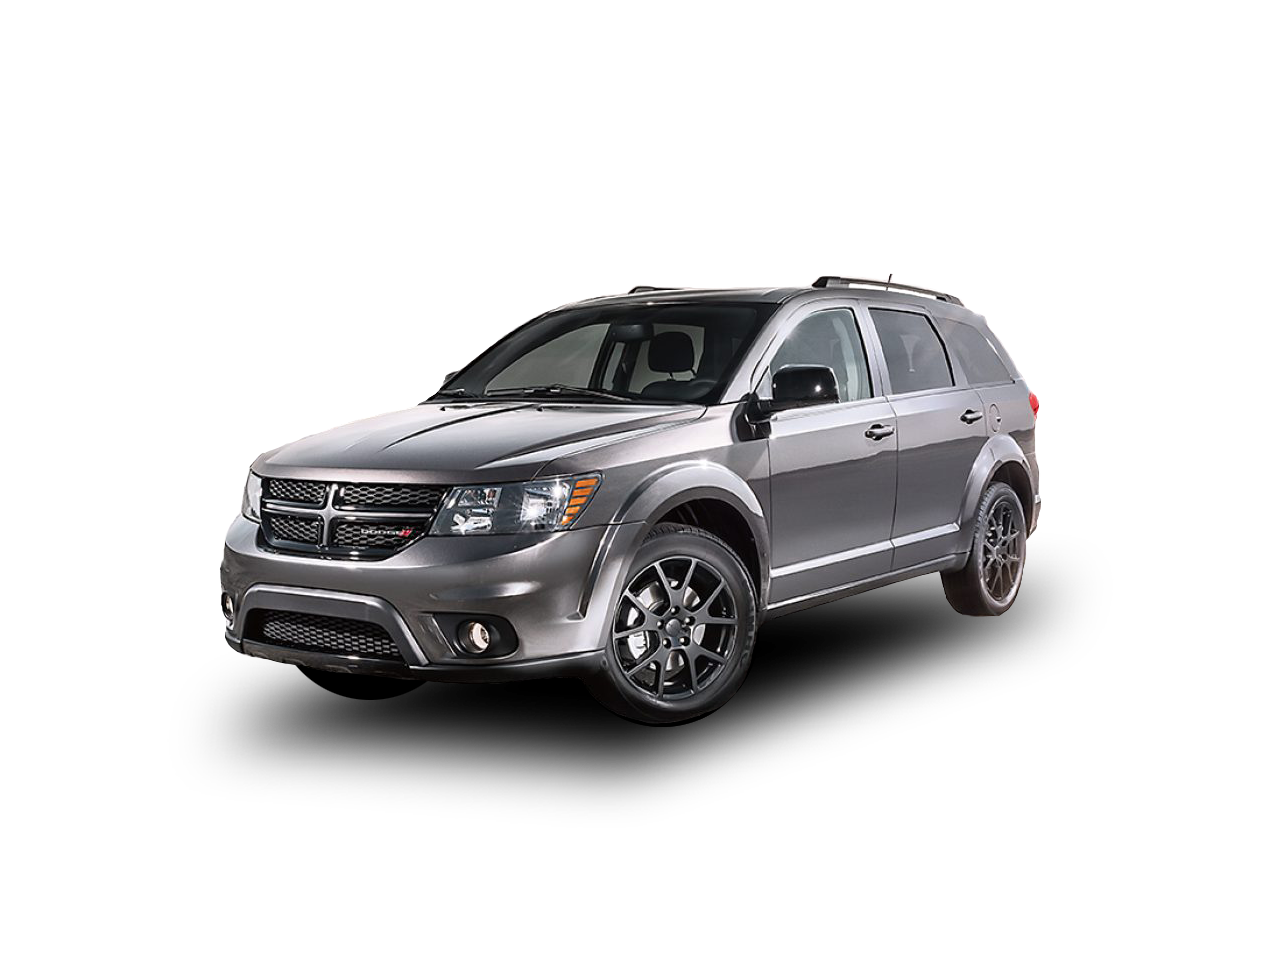 Test Drive A 2017 Dodge Journey at Arrigo Dodge Chrysler Jeep Ram Ft. Pierce in Fort Pierce